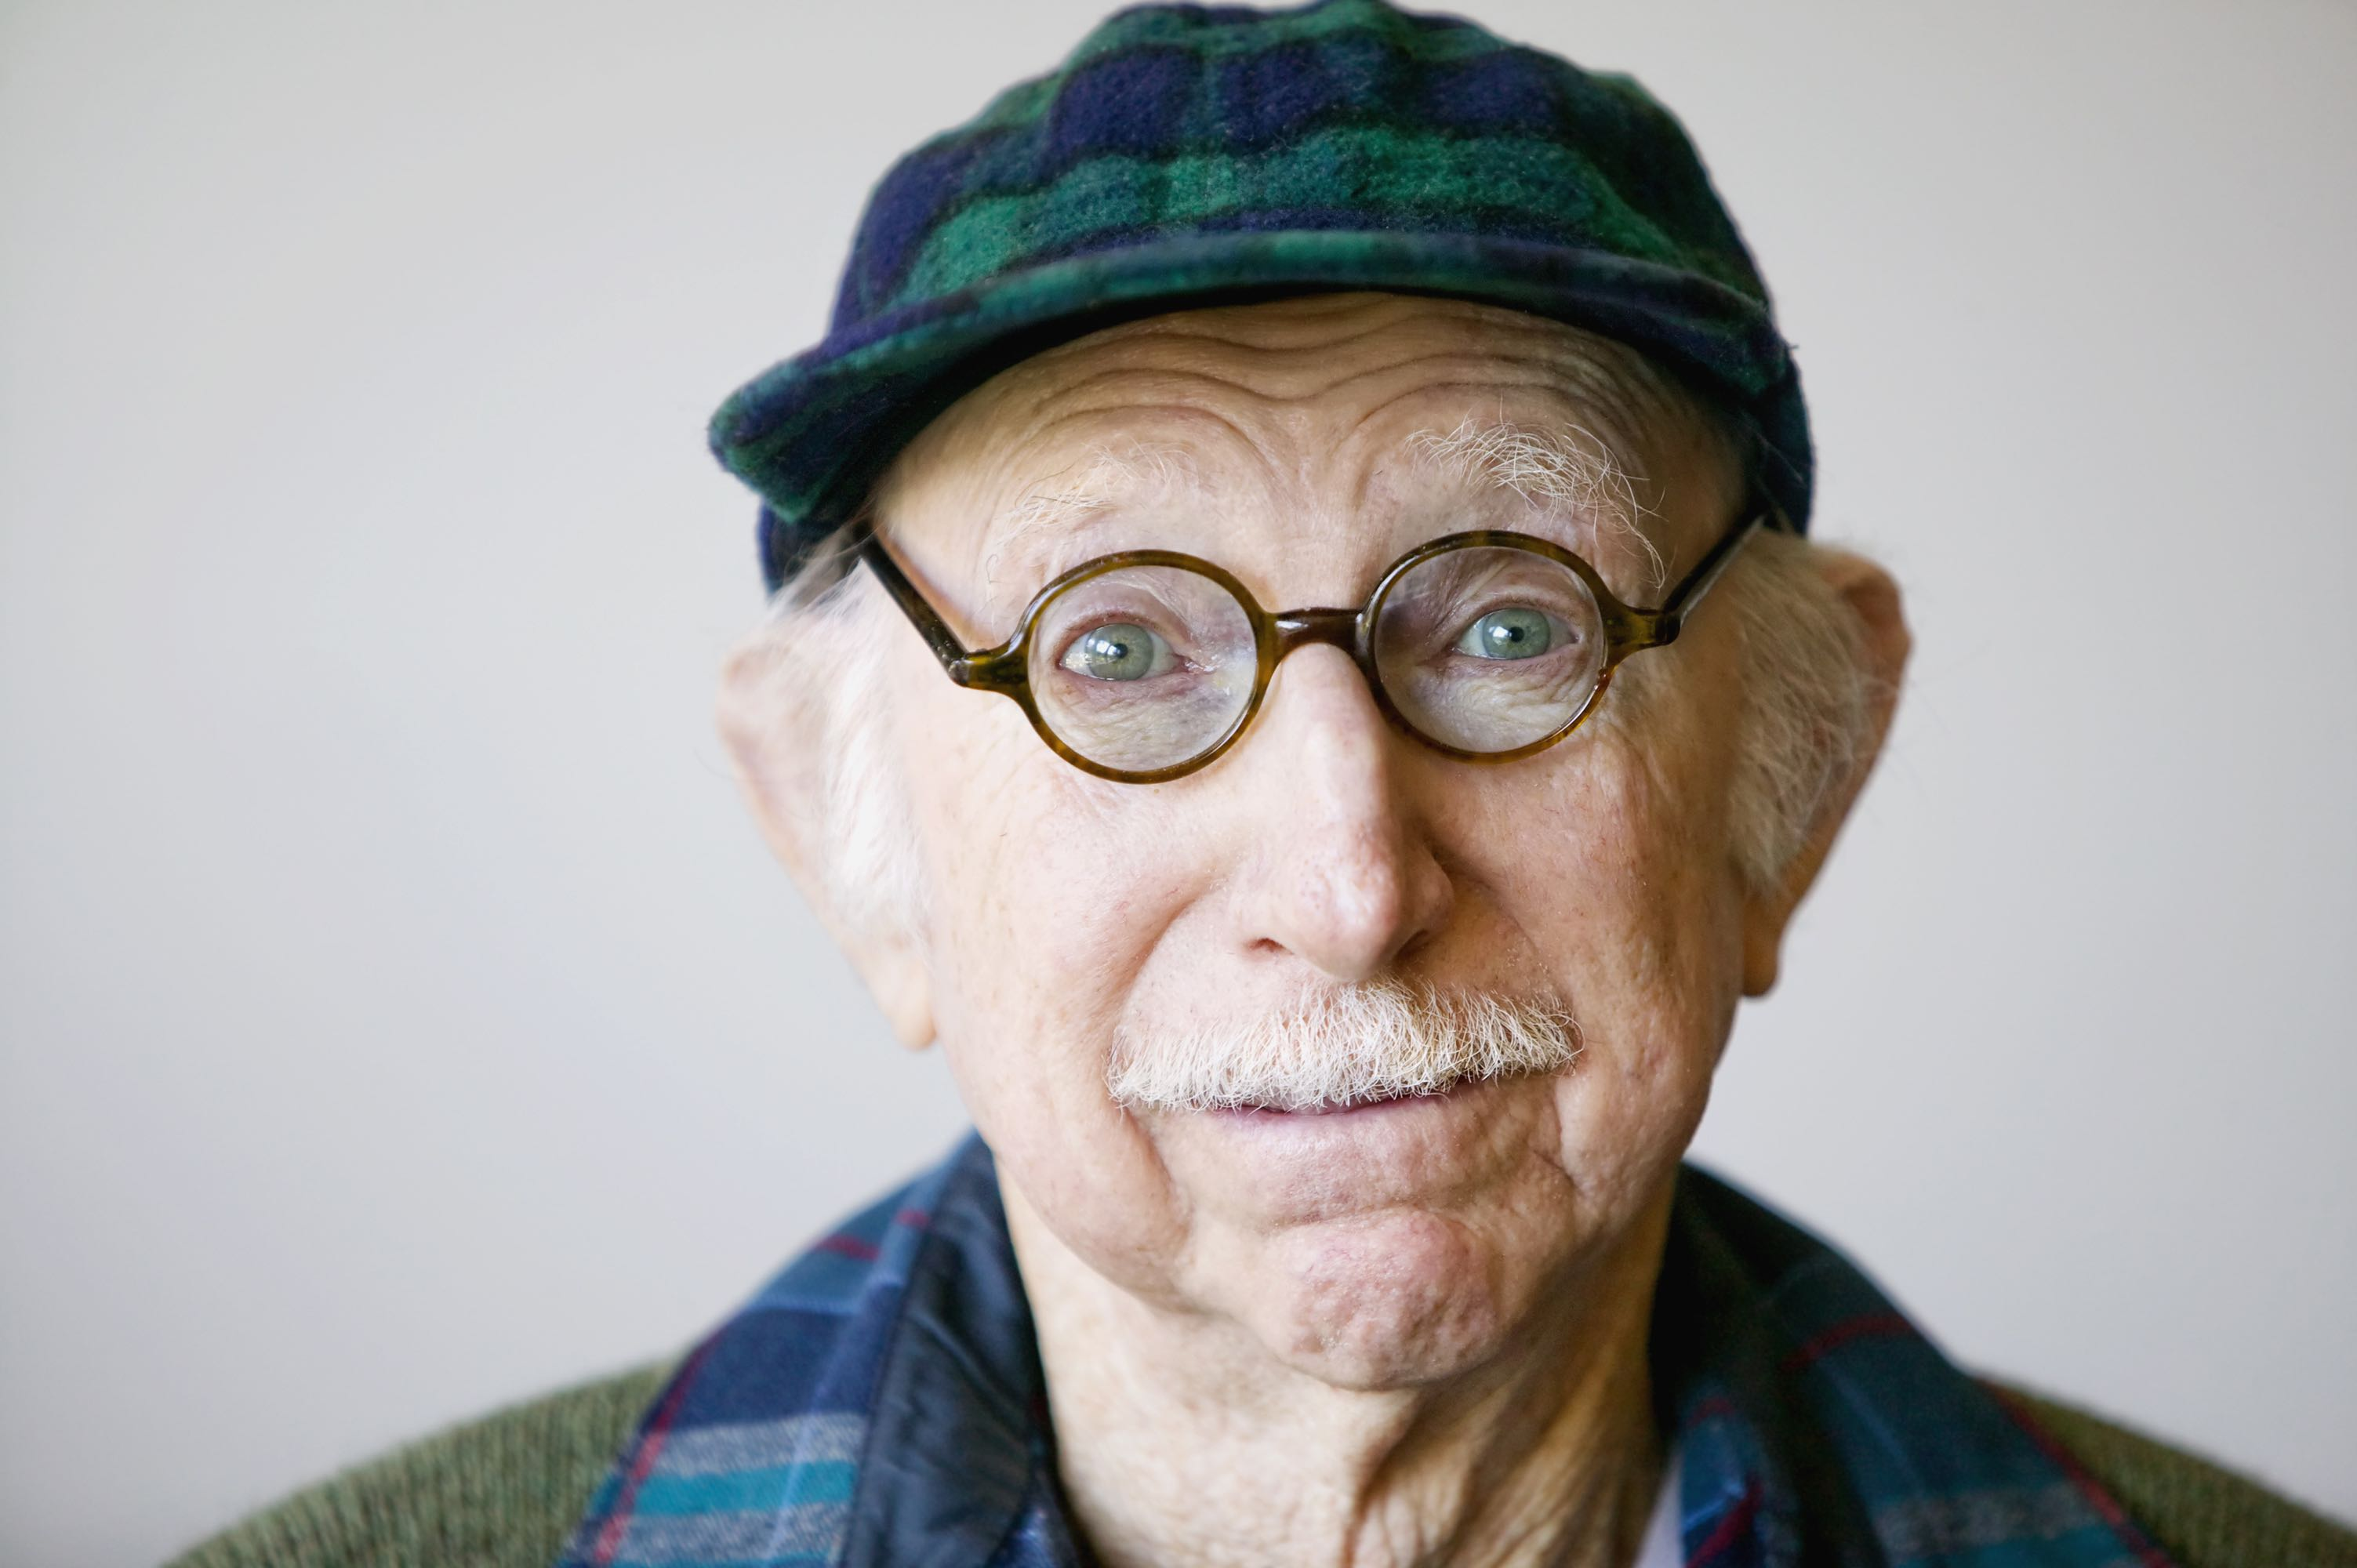 Portrait of a senior citizen wearing glasses and a sweater.